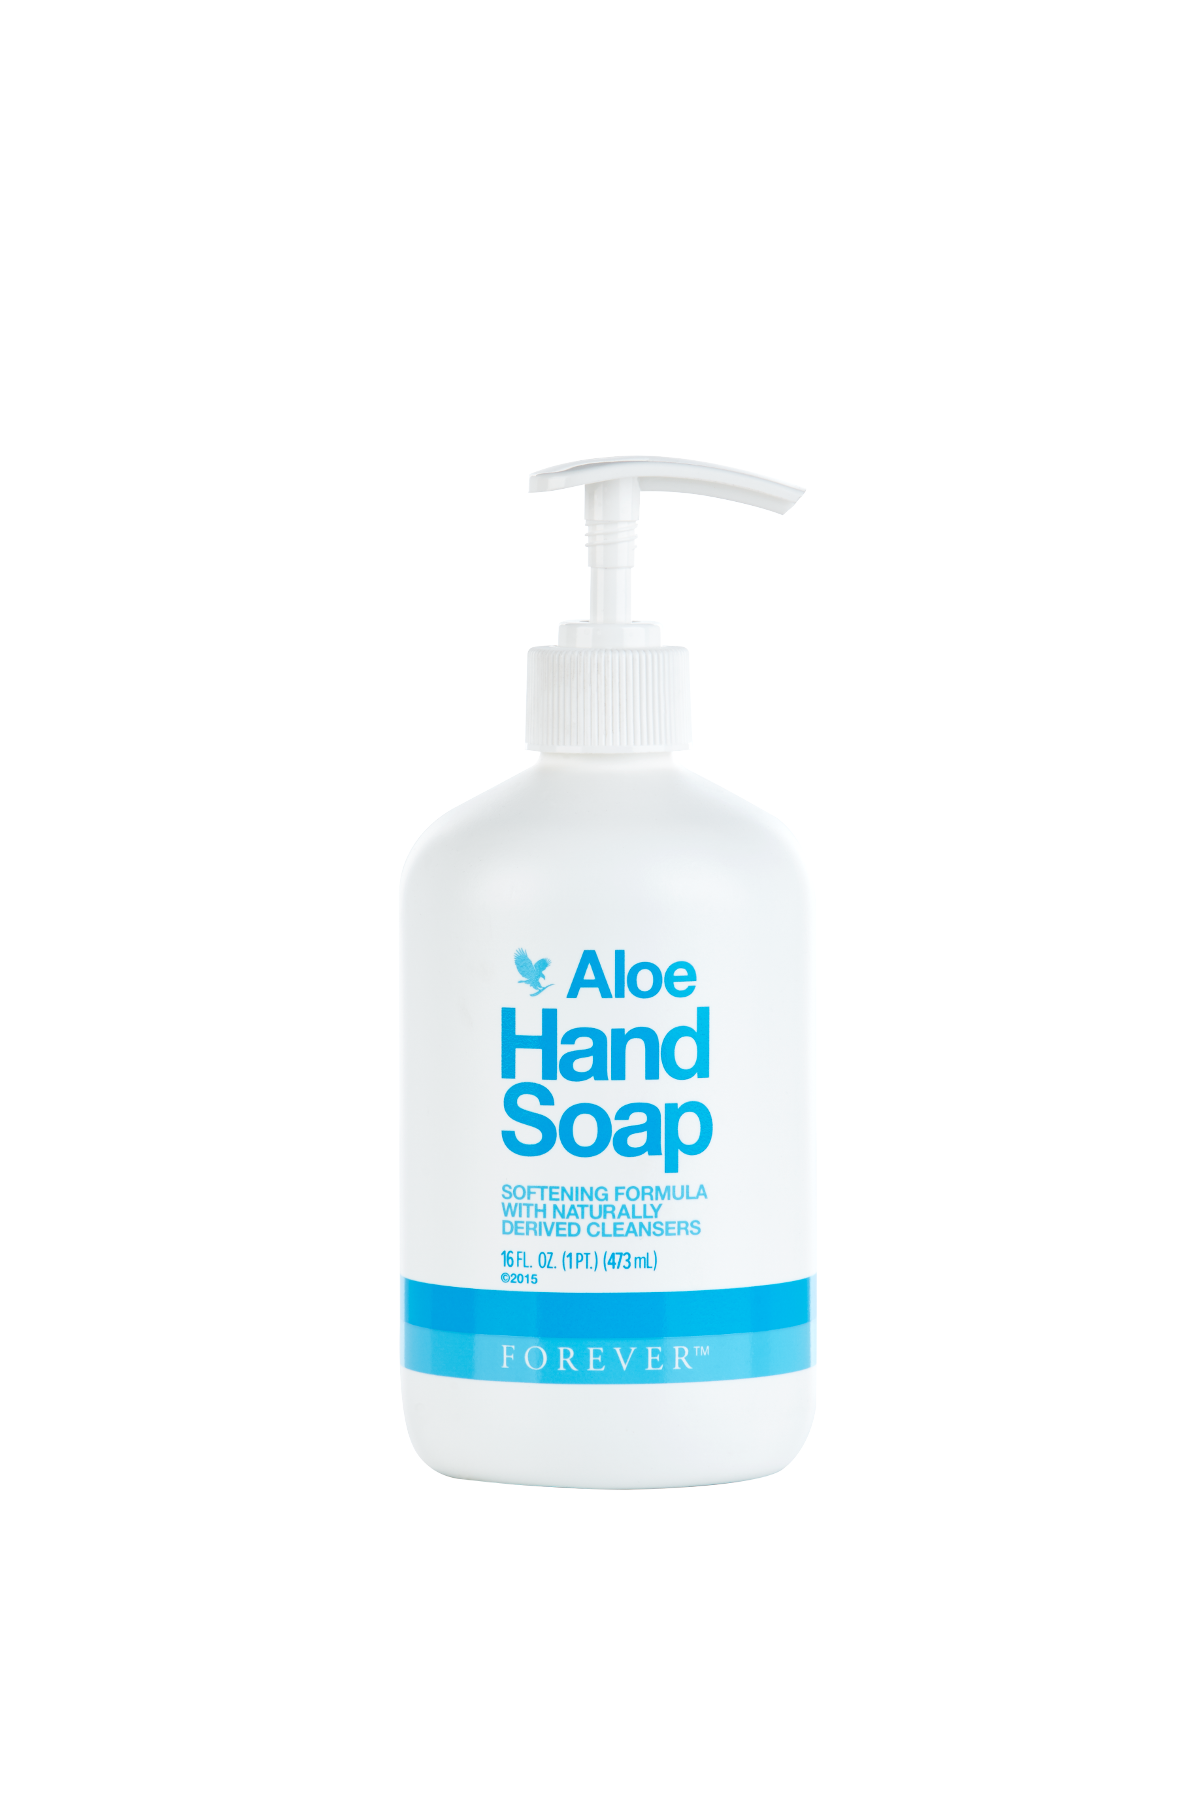 New and improved, Aloe Hand Soap provides a soothing experience with each use. Formulated from pure 100% stabilised aloe vera gel and natural cleansers, this gentle formula with fruit extracts leaves your skin feeling soft and hydrated.